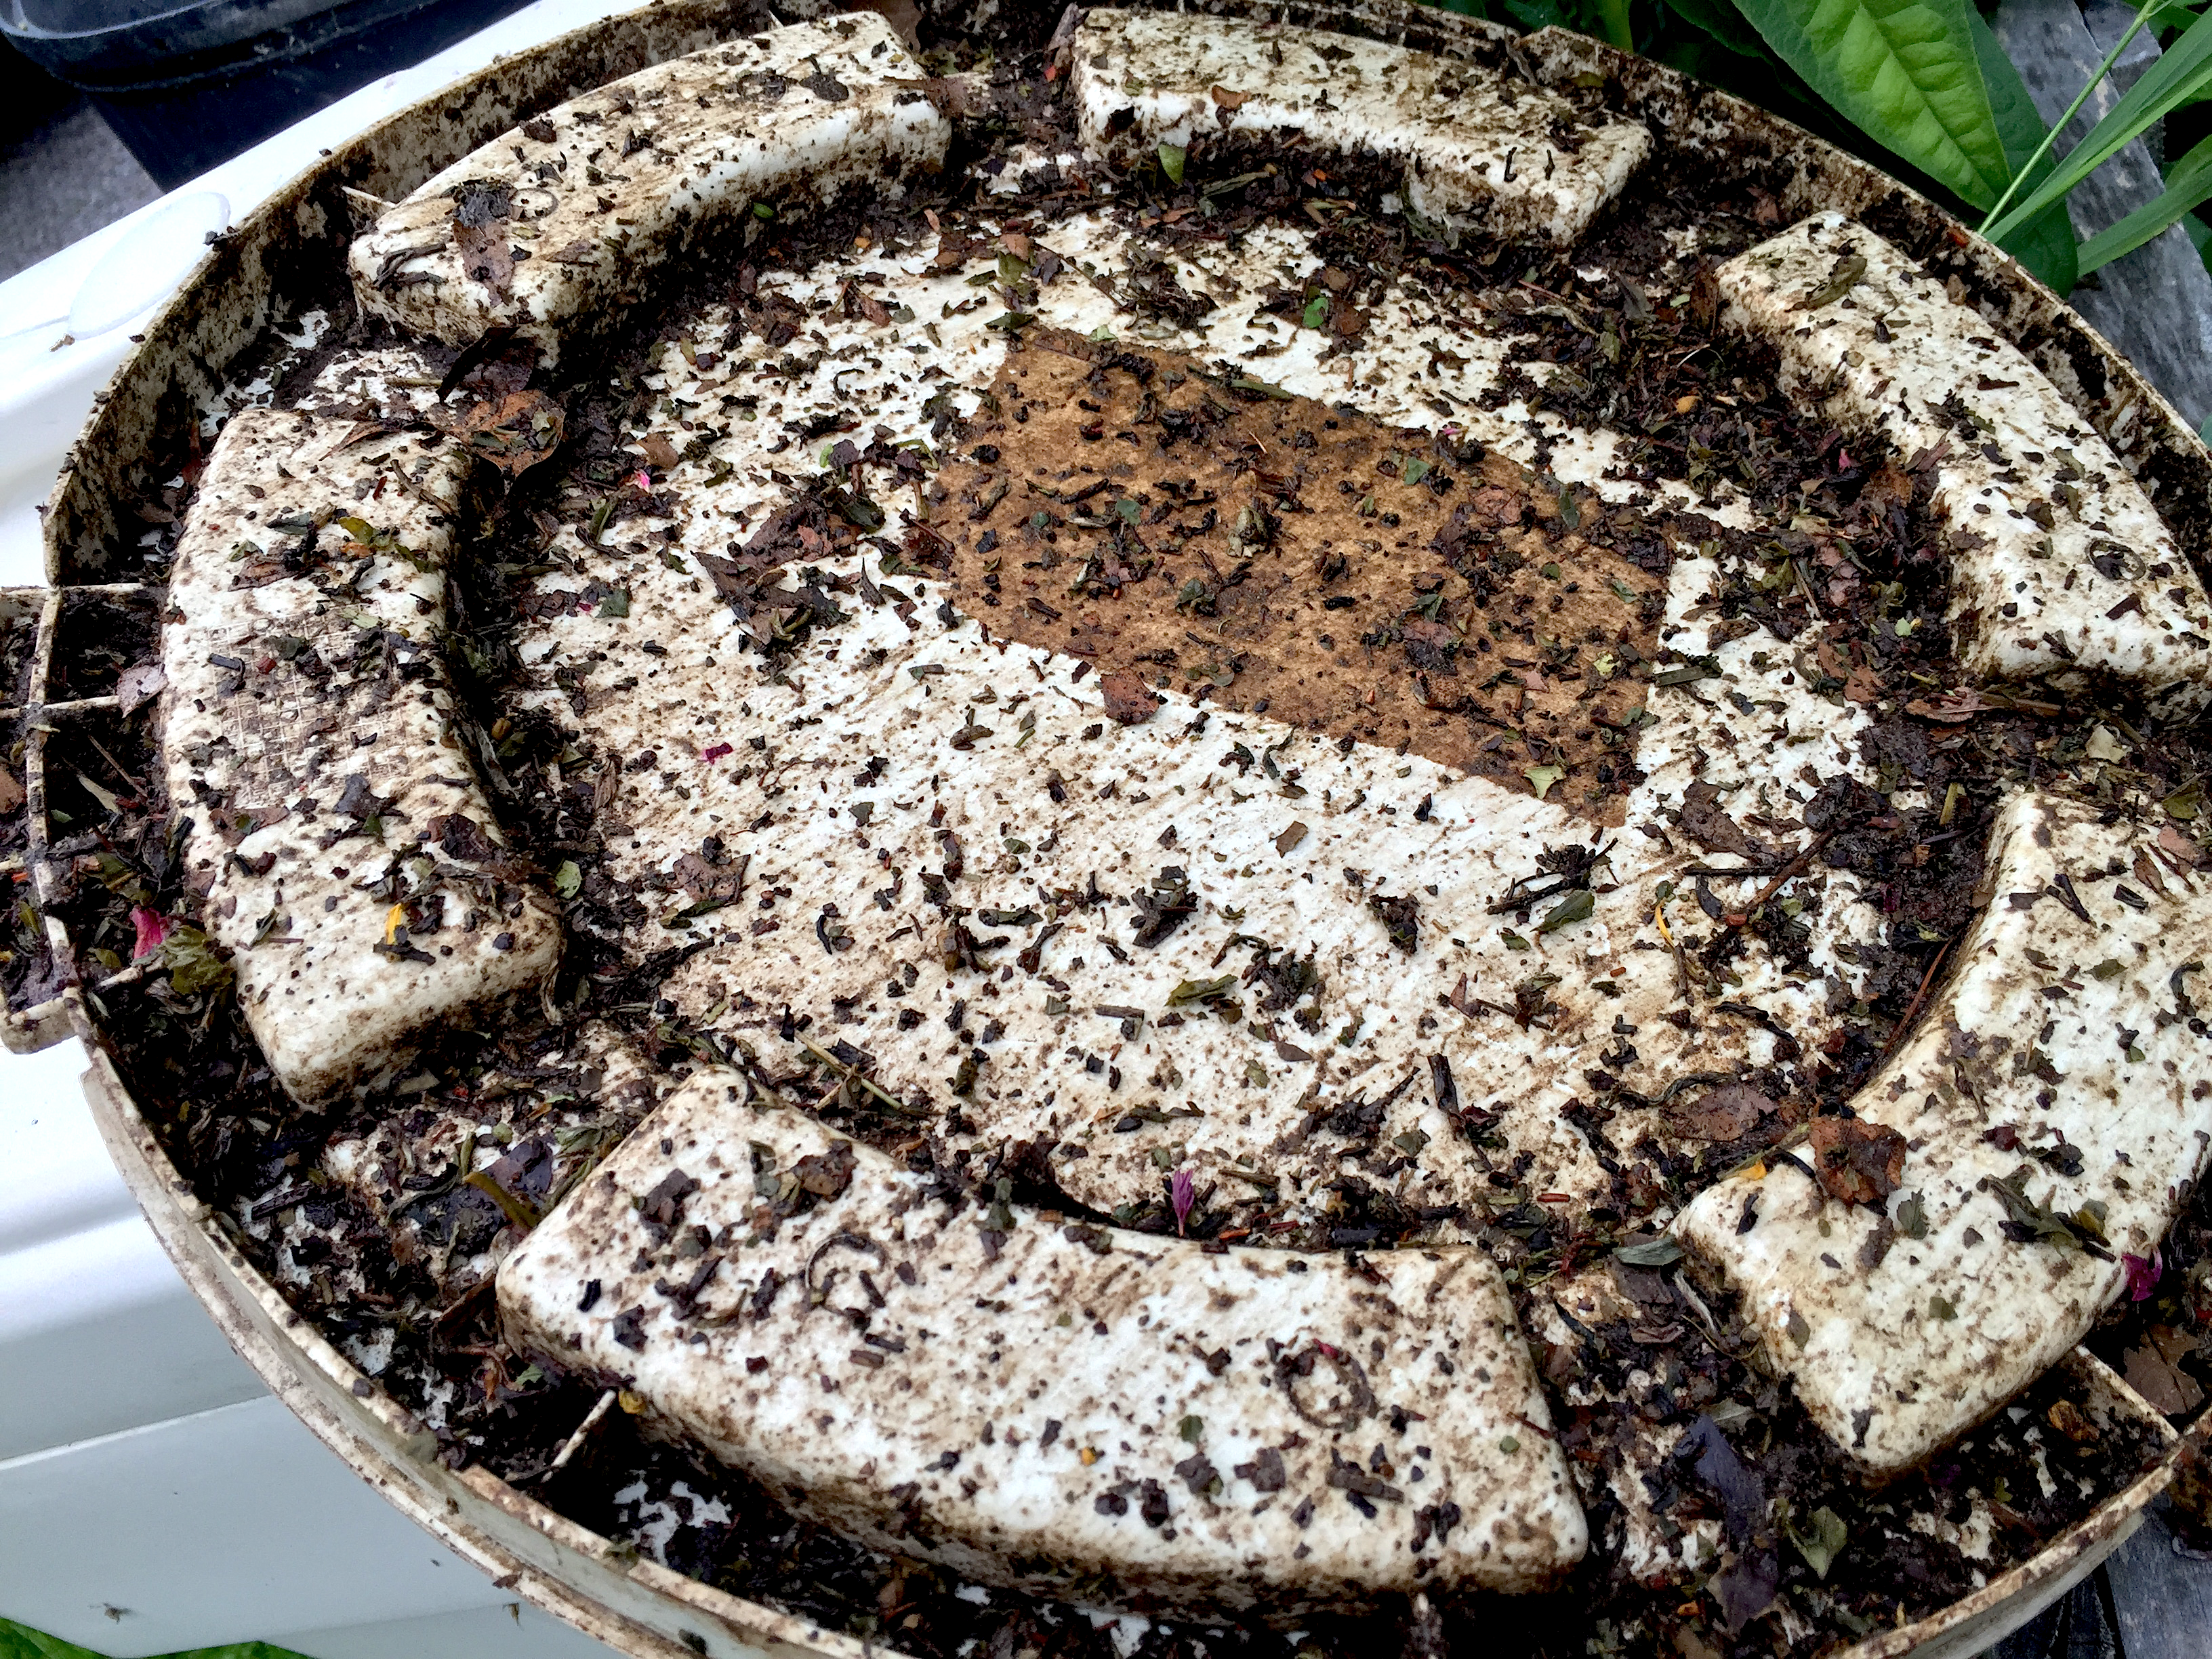 Compost Barrel Lid by Jocilyn Mors is licensed under a Creative Commons Attribution 4.0 International License.